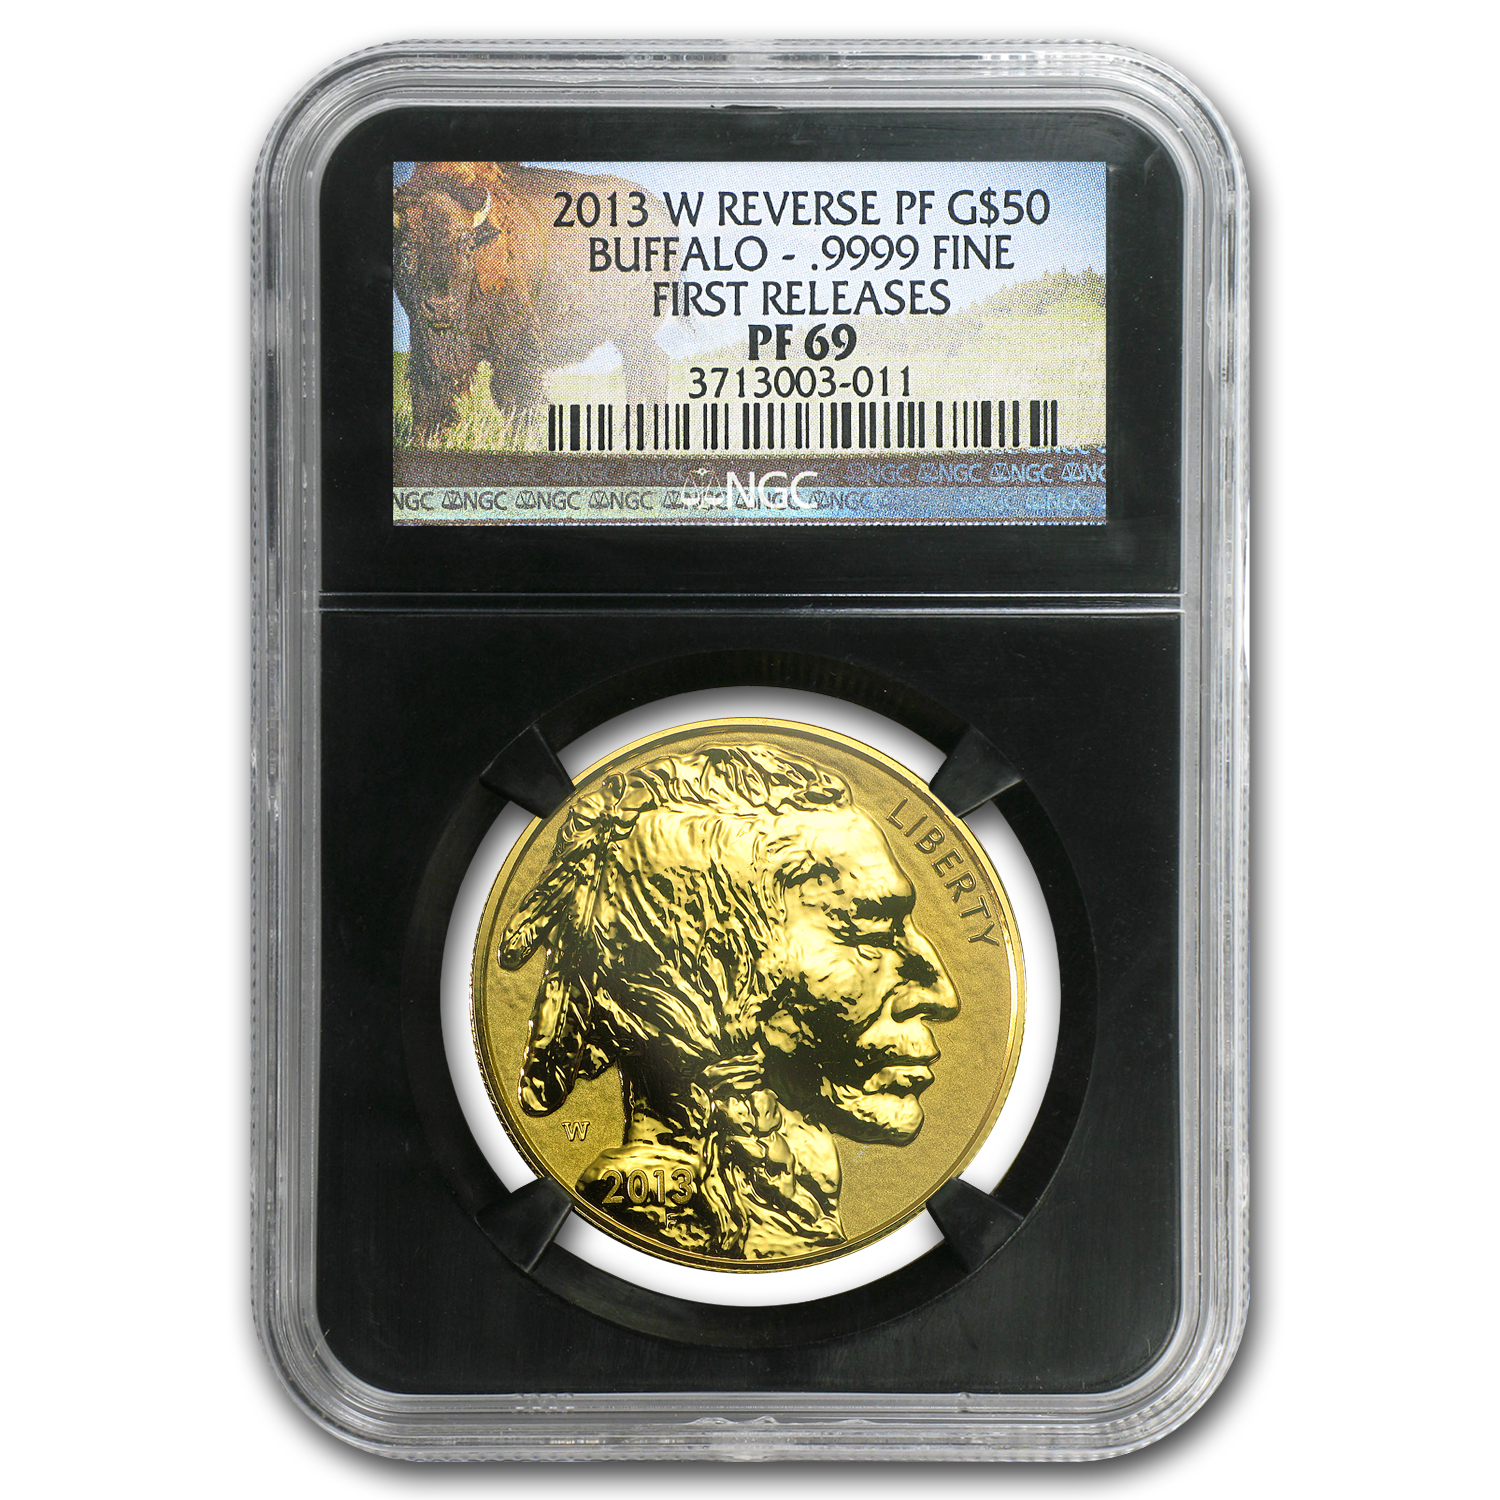 2013-W 1 oz Reverse Proof Gold Buffalo PF-69 NGC (Black Holder)